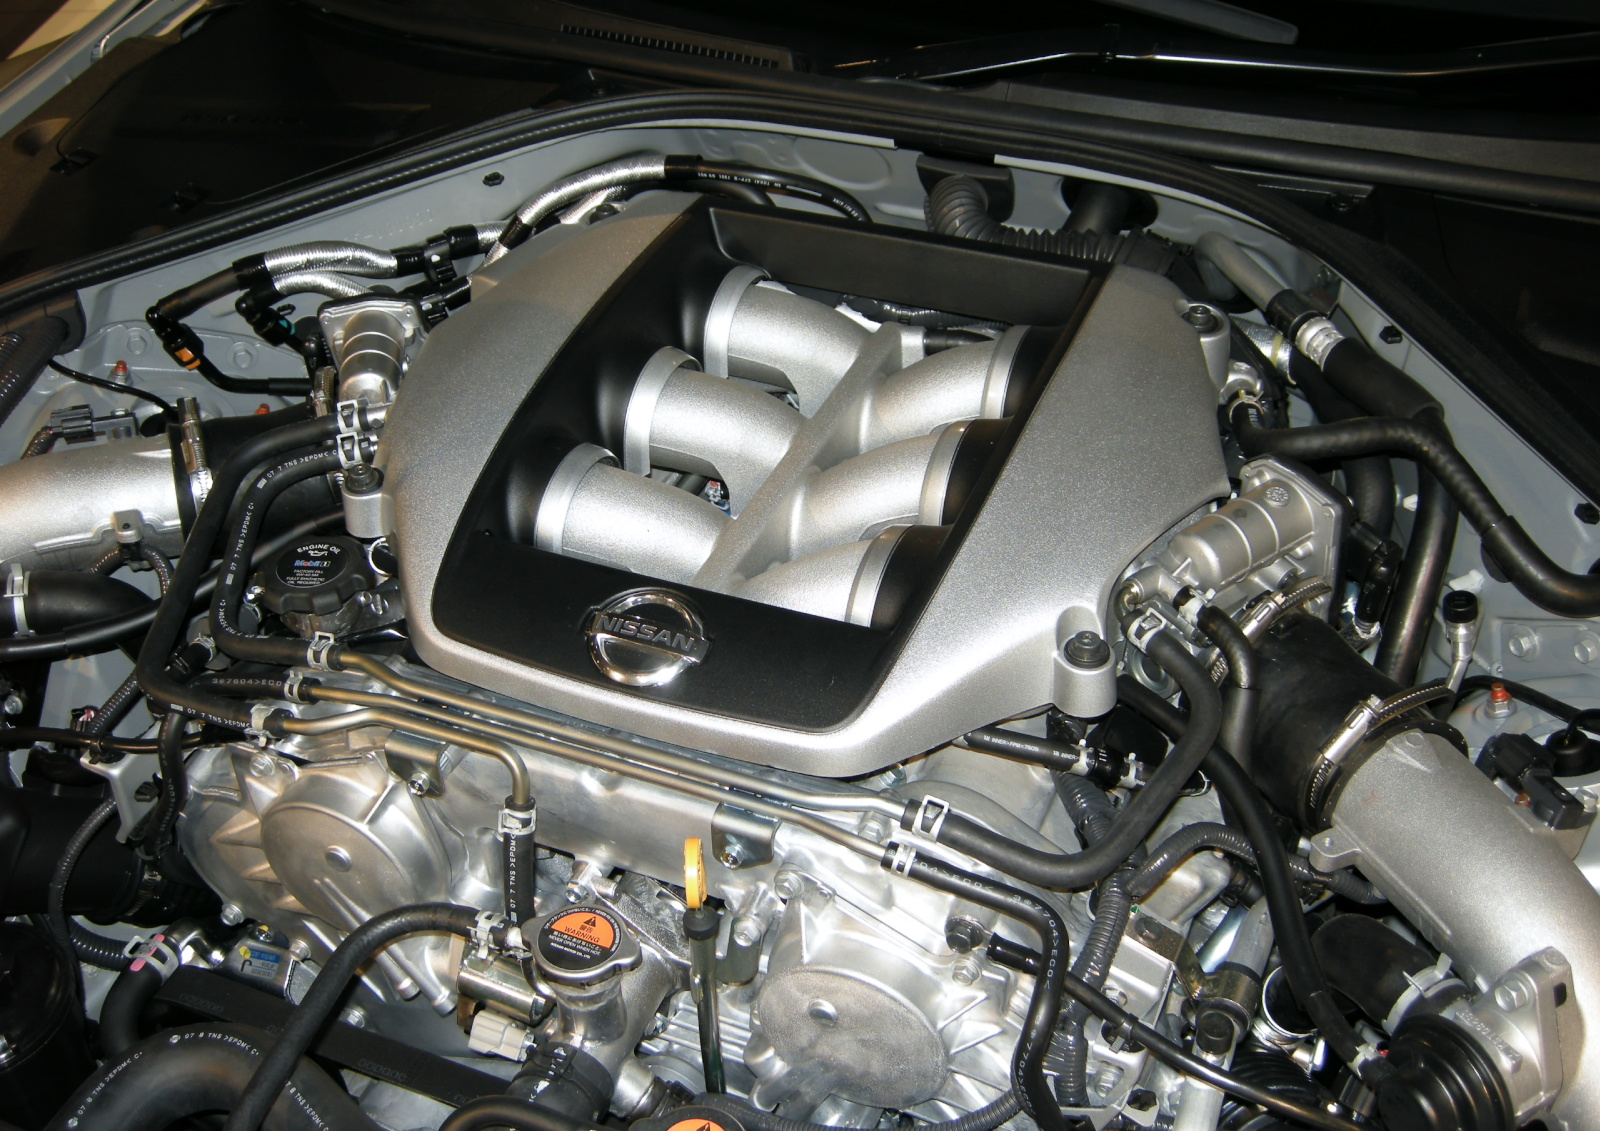 Nissan VR engine - Wikipedia